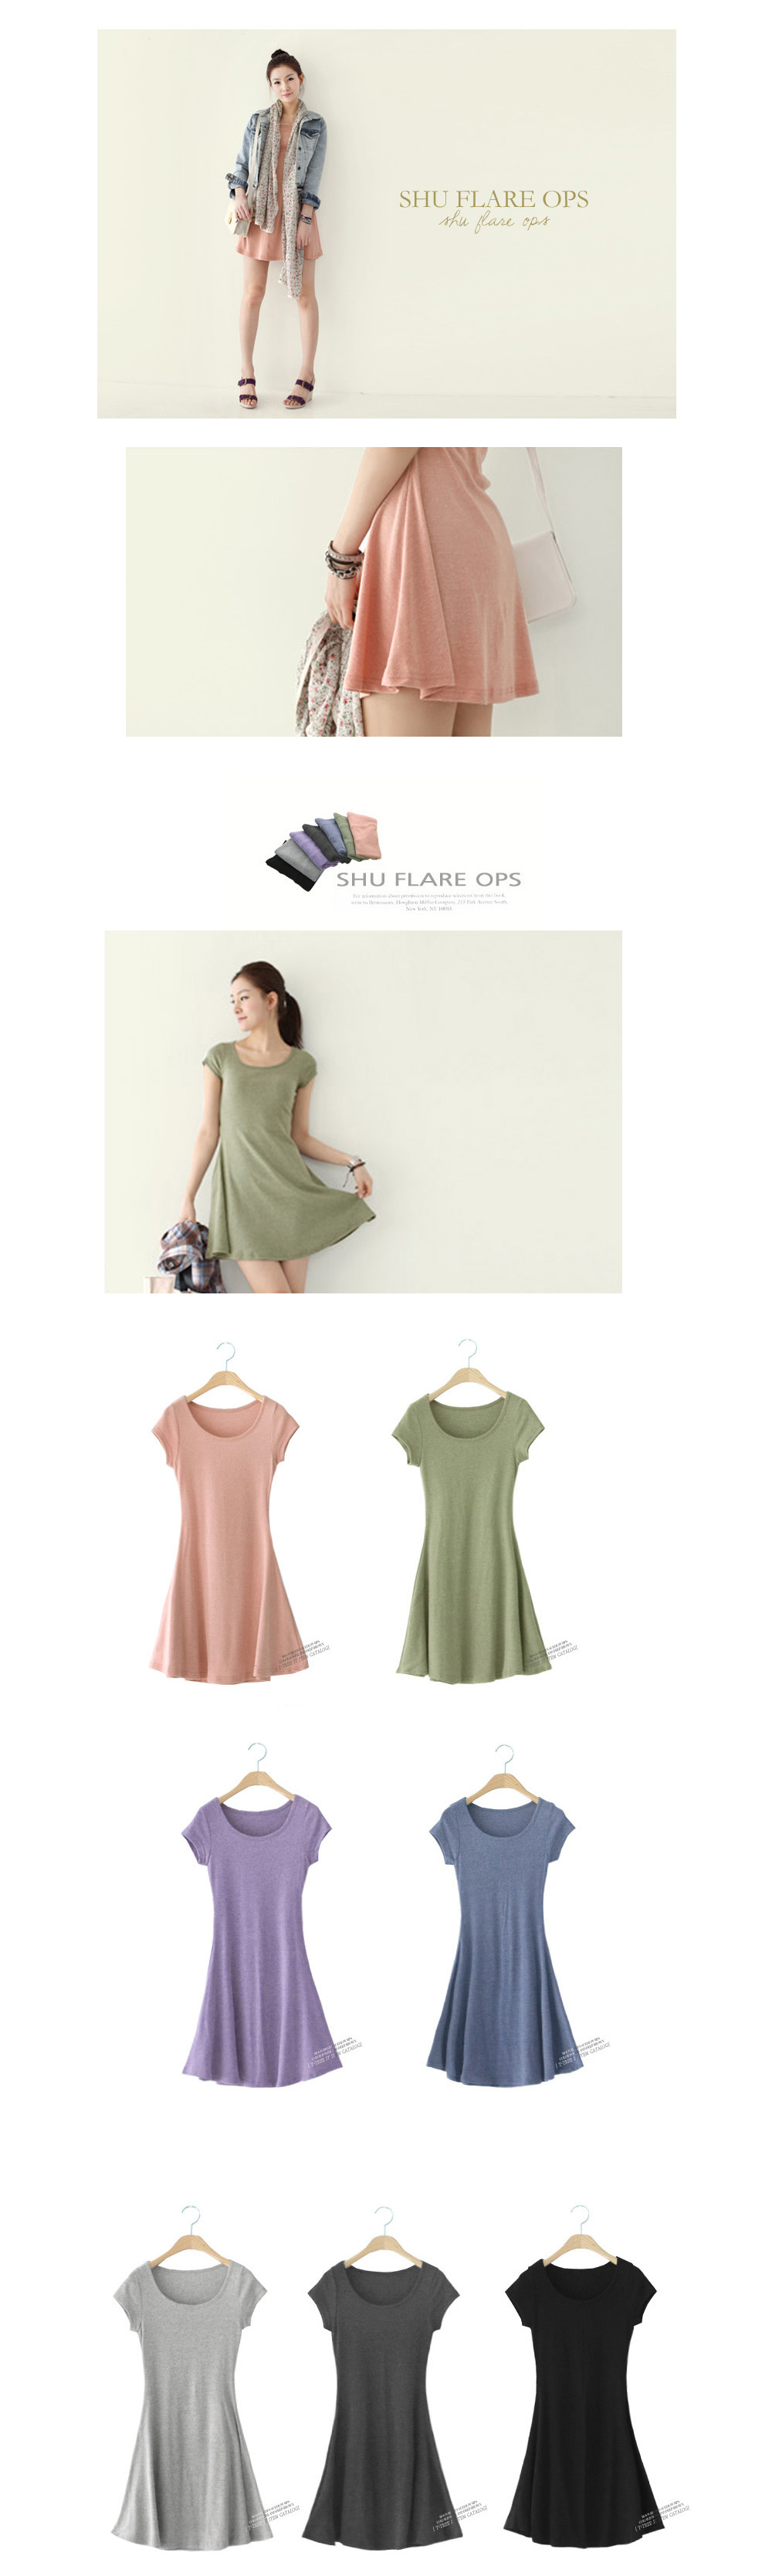 Buy Basic Cotton Dress Deals for only S79 instead of S399 : 78b03eb2 dd39 4267 8a5c df911e5c8768 from www.bydeals.net size 1000 x 3336 jpeg 730kB